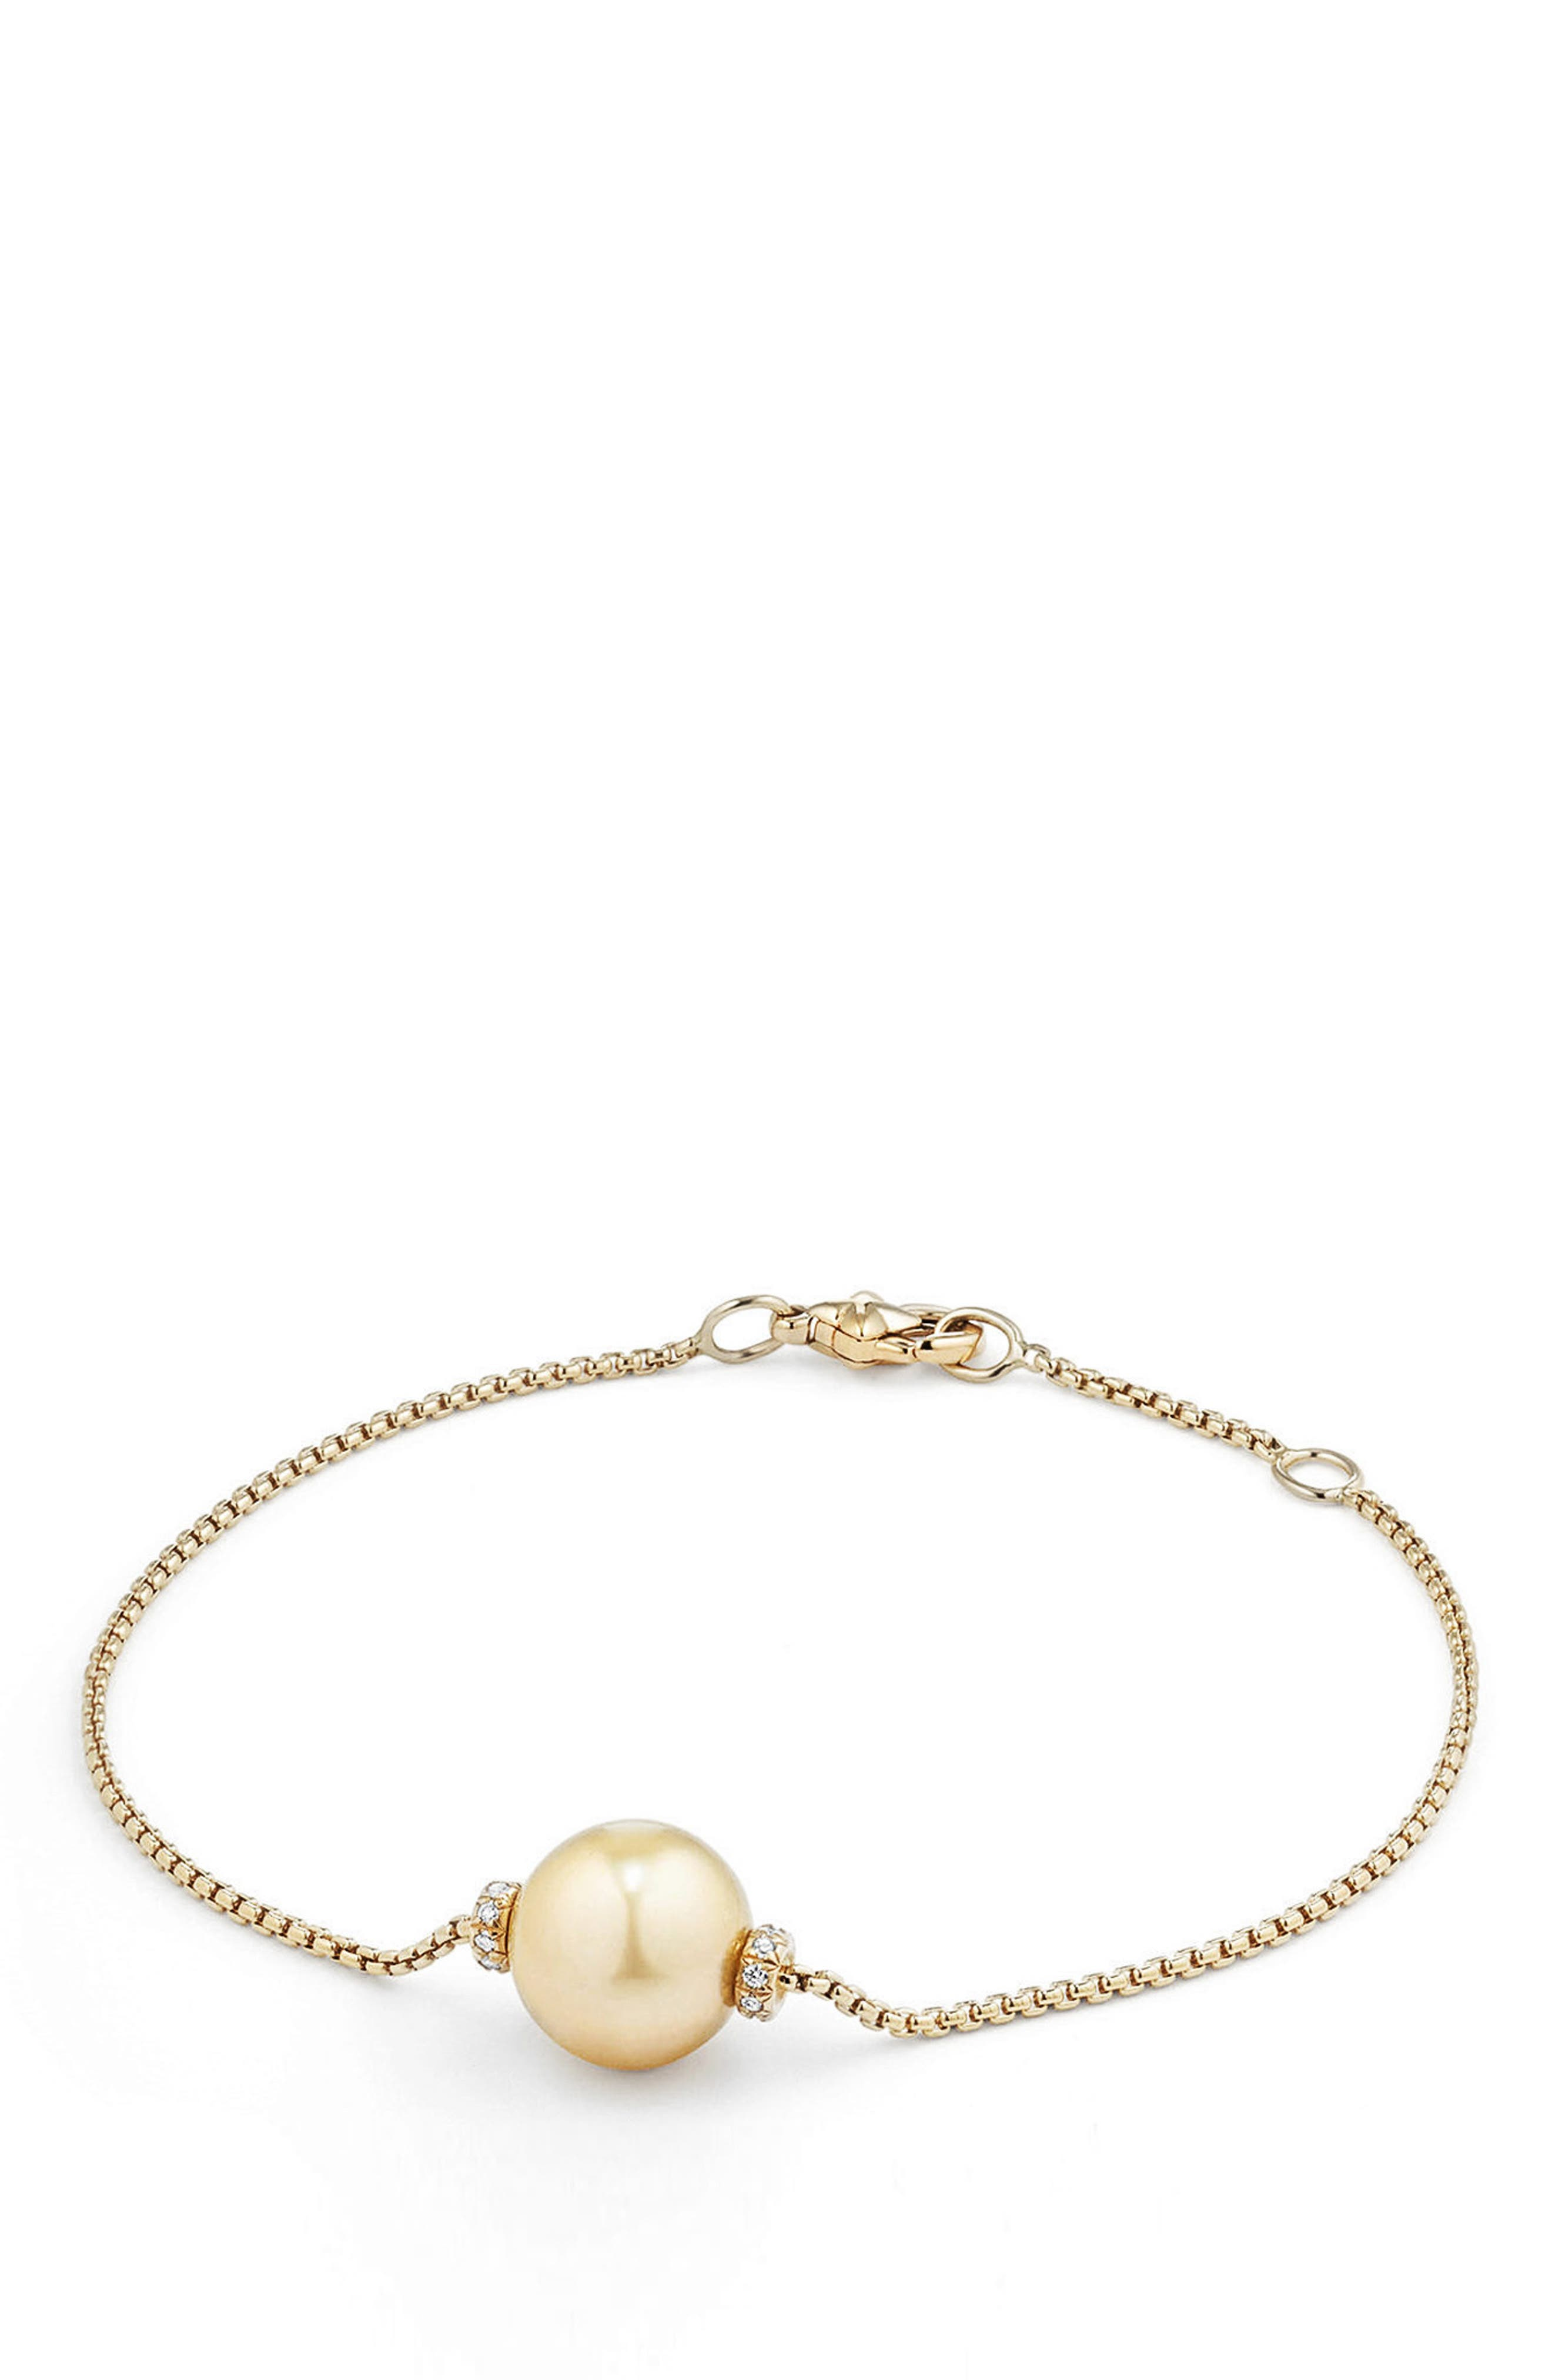 Solari Single Station Bracelet in 18k Gold with Diamonds & Pearl,                             Main thumbnail 1, color,                             YELLOW GOLD/ SOUTH SEA YELLOW